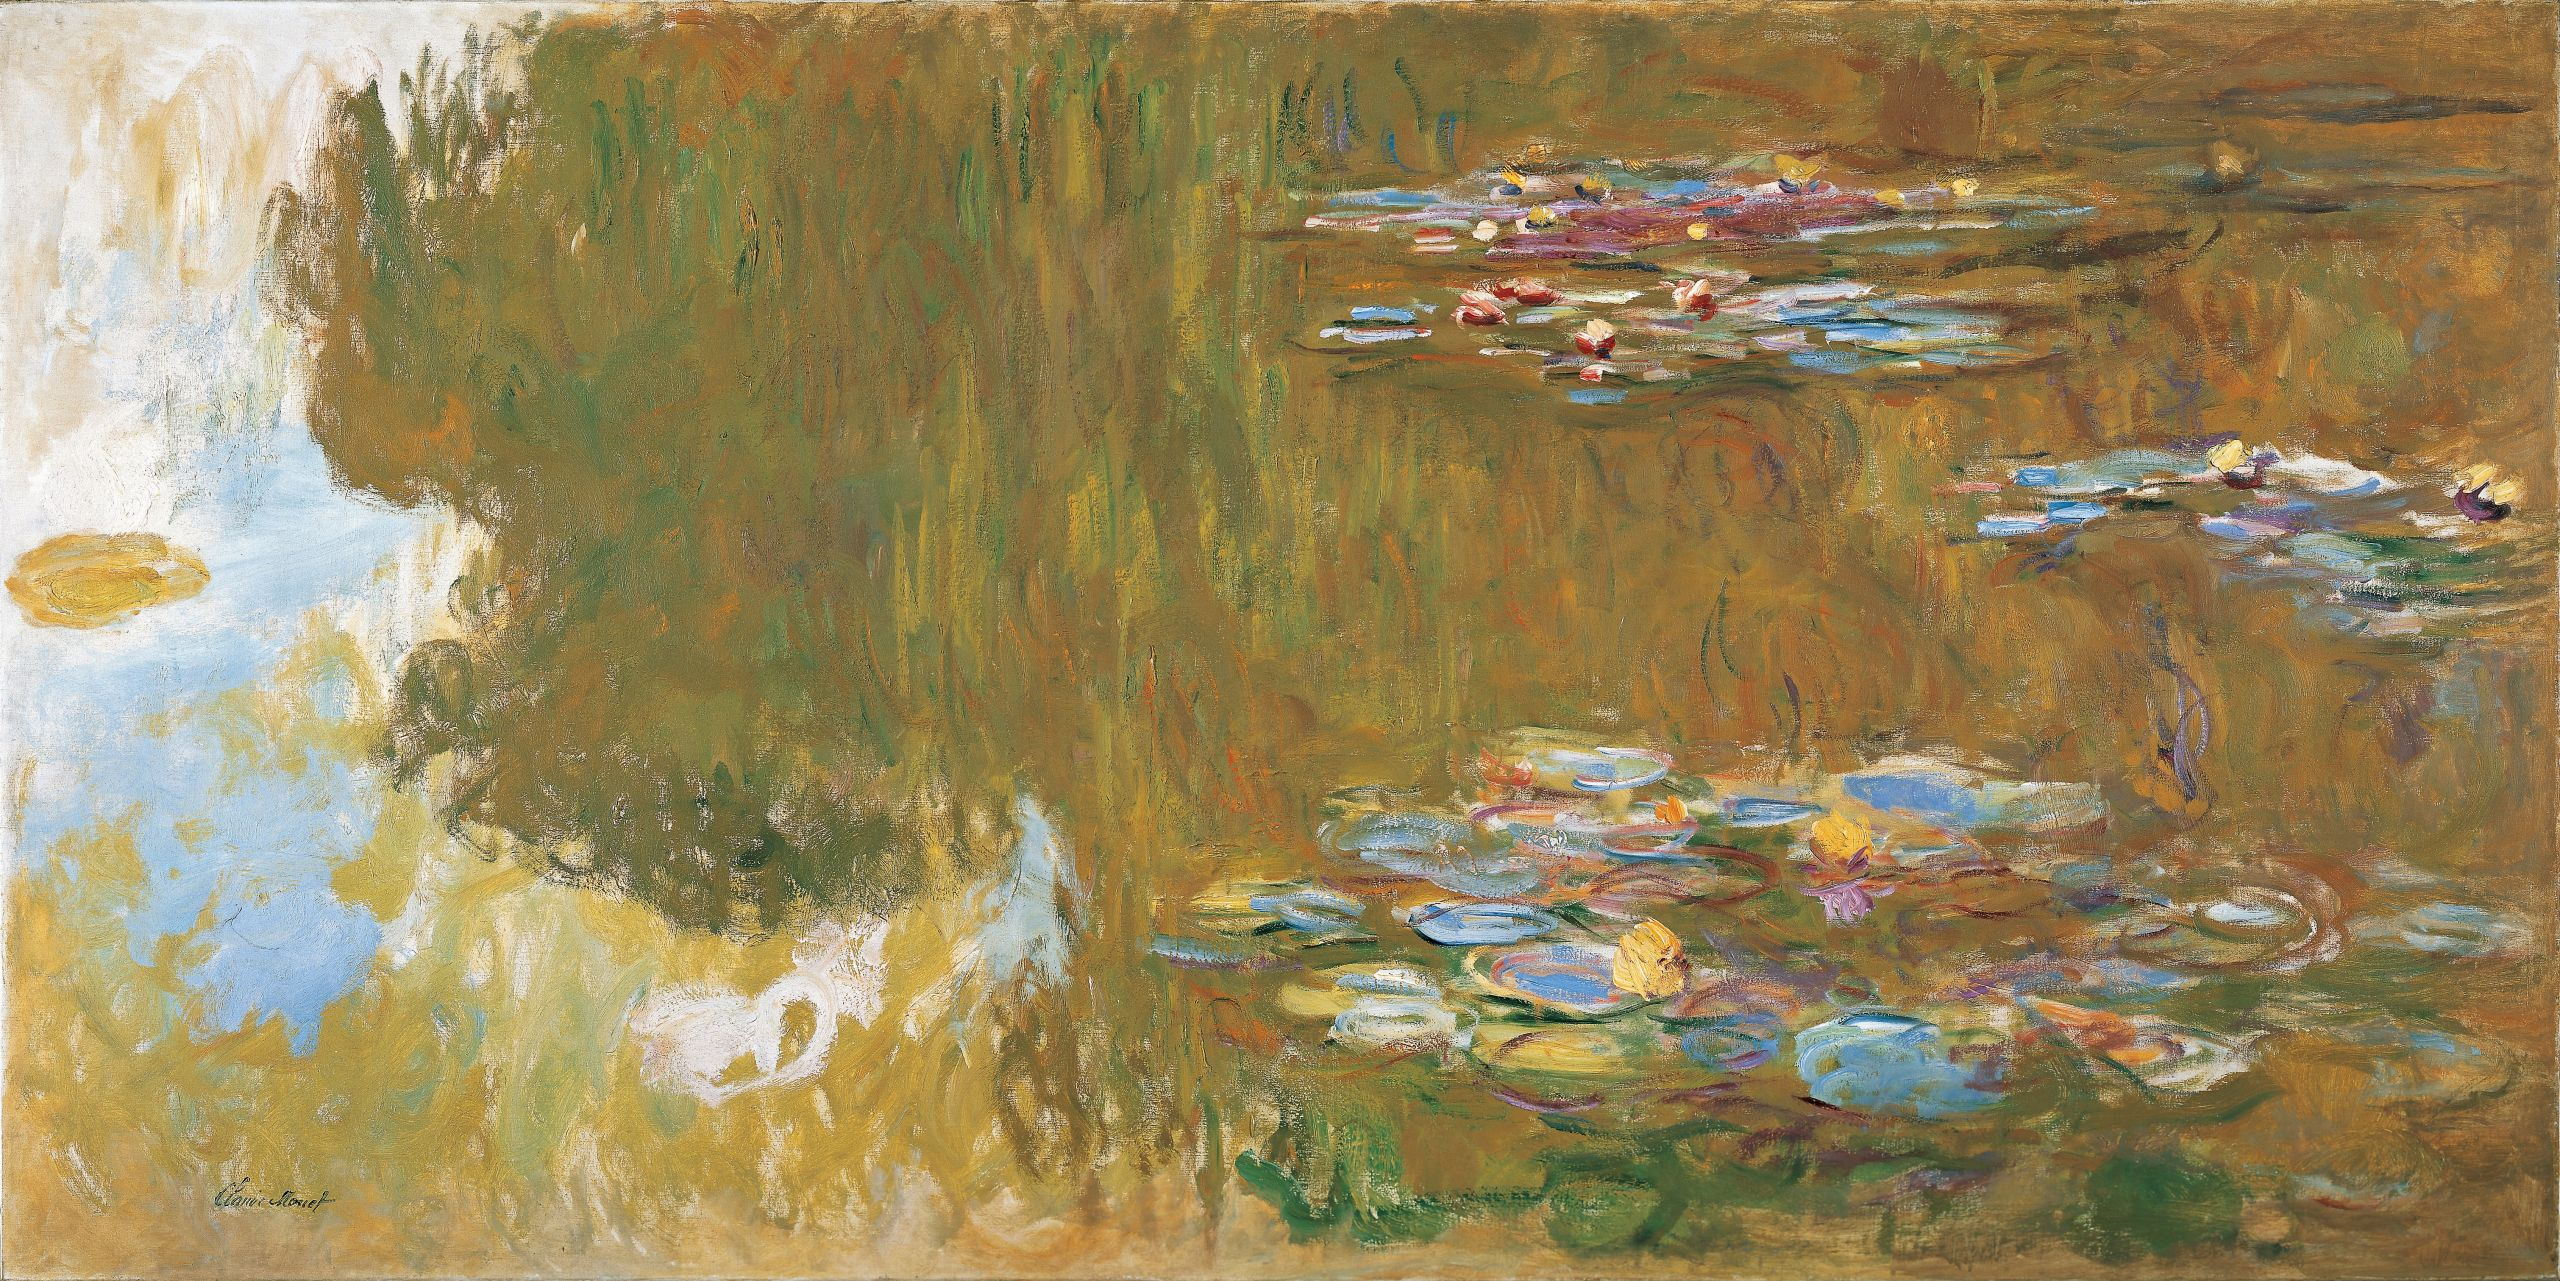 Claude Monet The Water Lily Pond c 1917 19 frame cropped Google Art Project